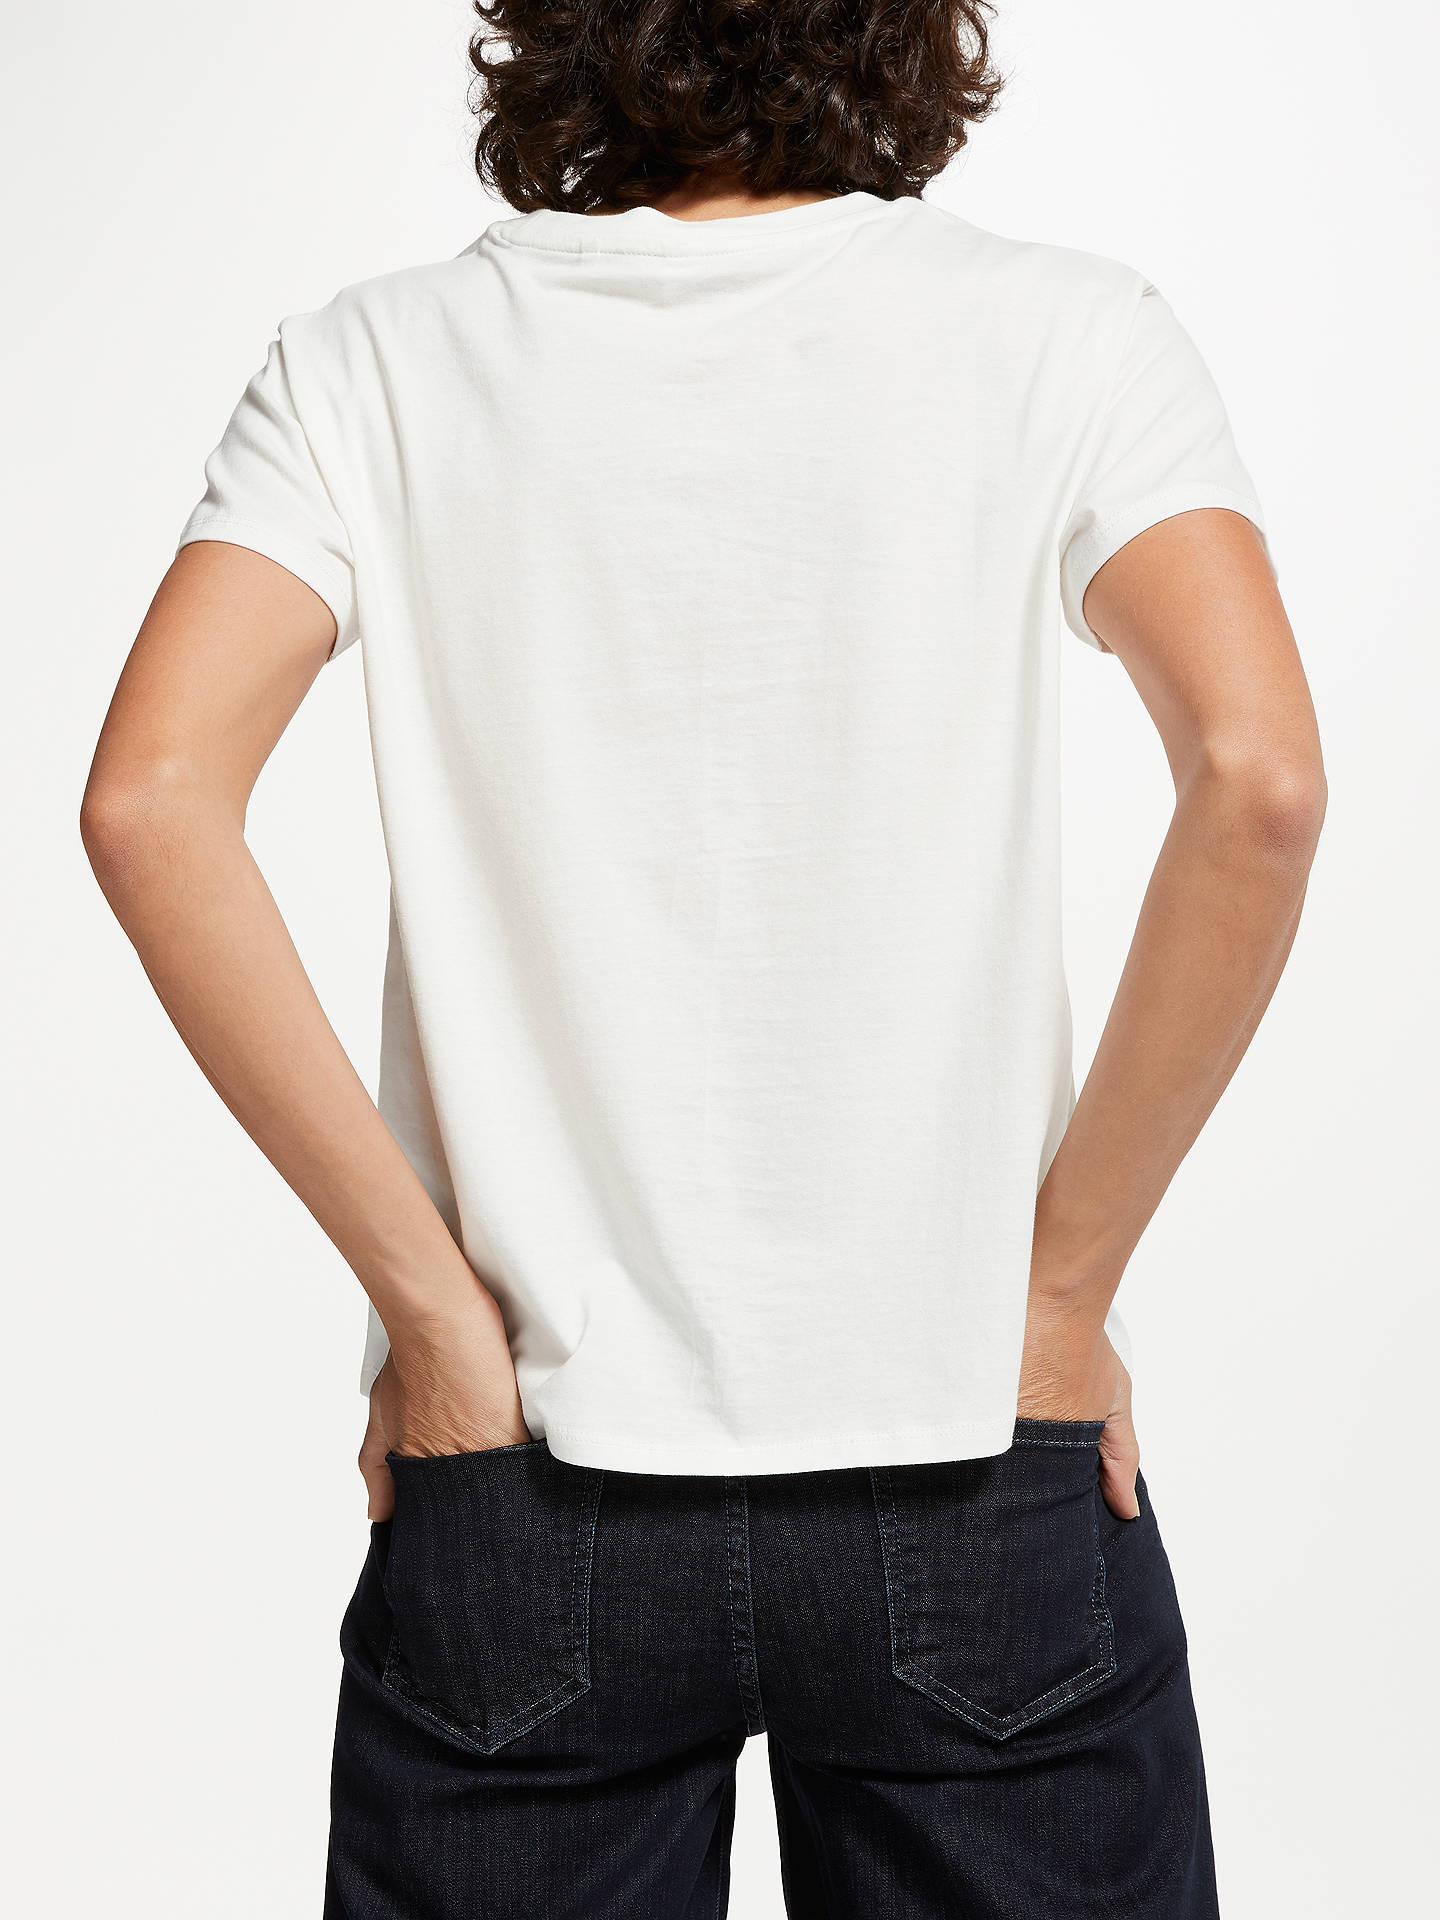 BuyAND/OR Foil Print Slogan T-Shirt, Ivory, 8 Online at johnlewis.com